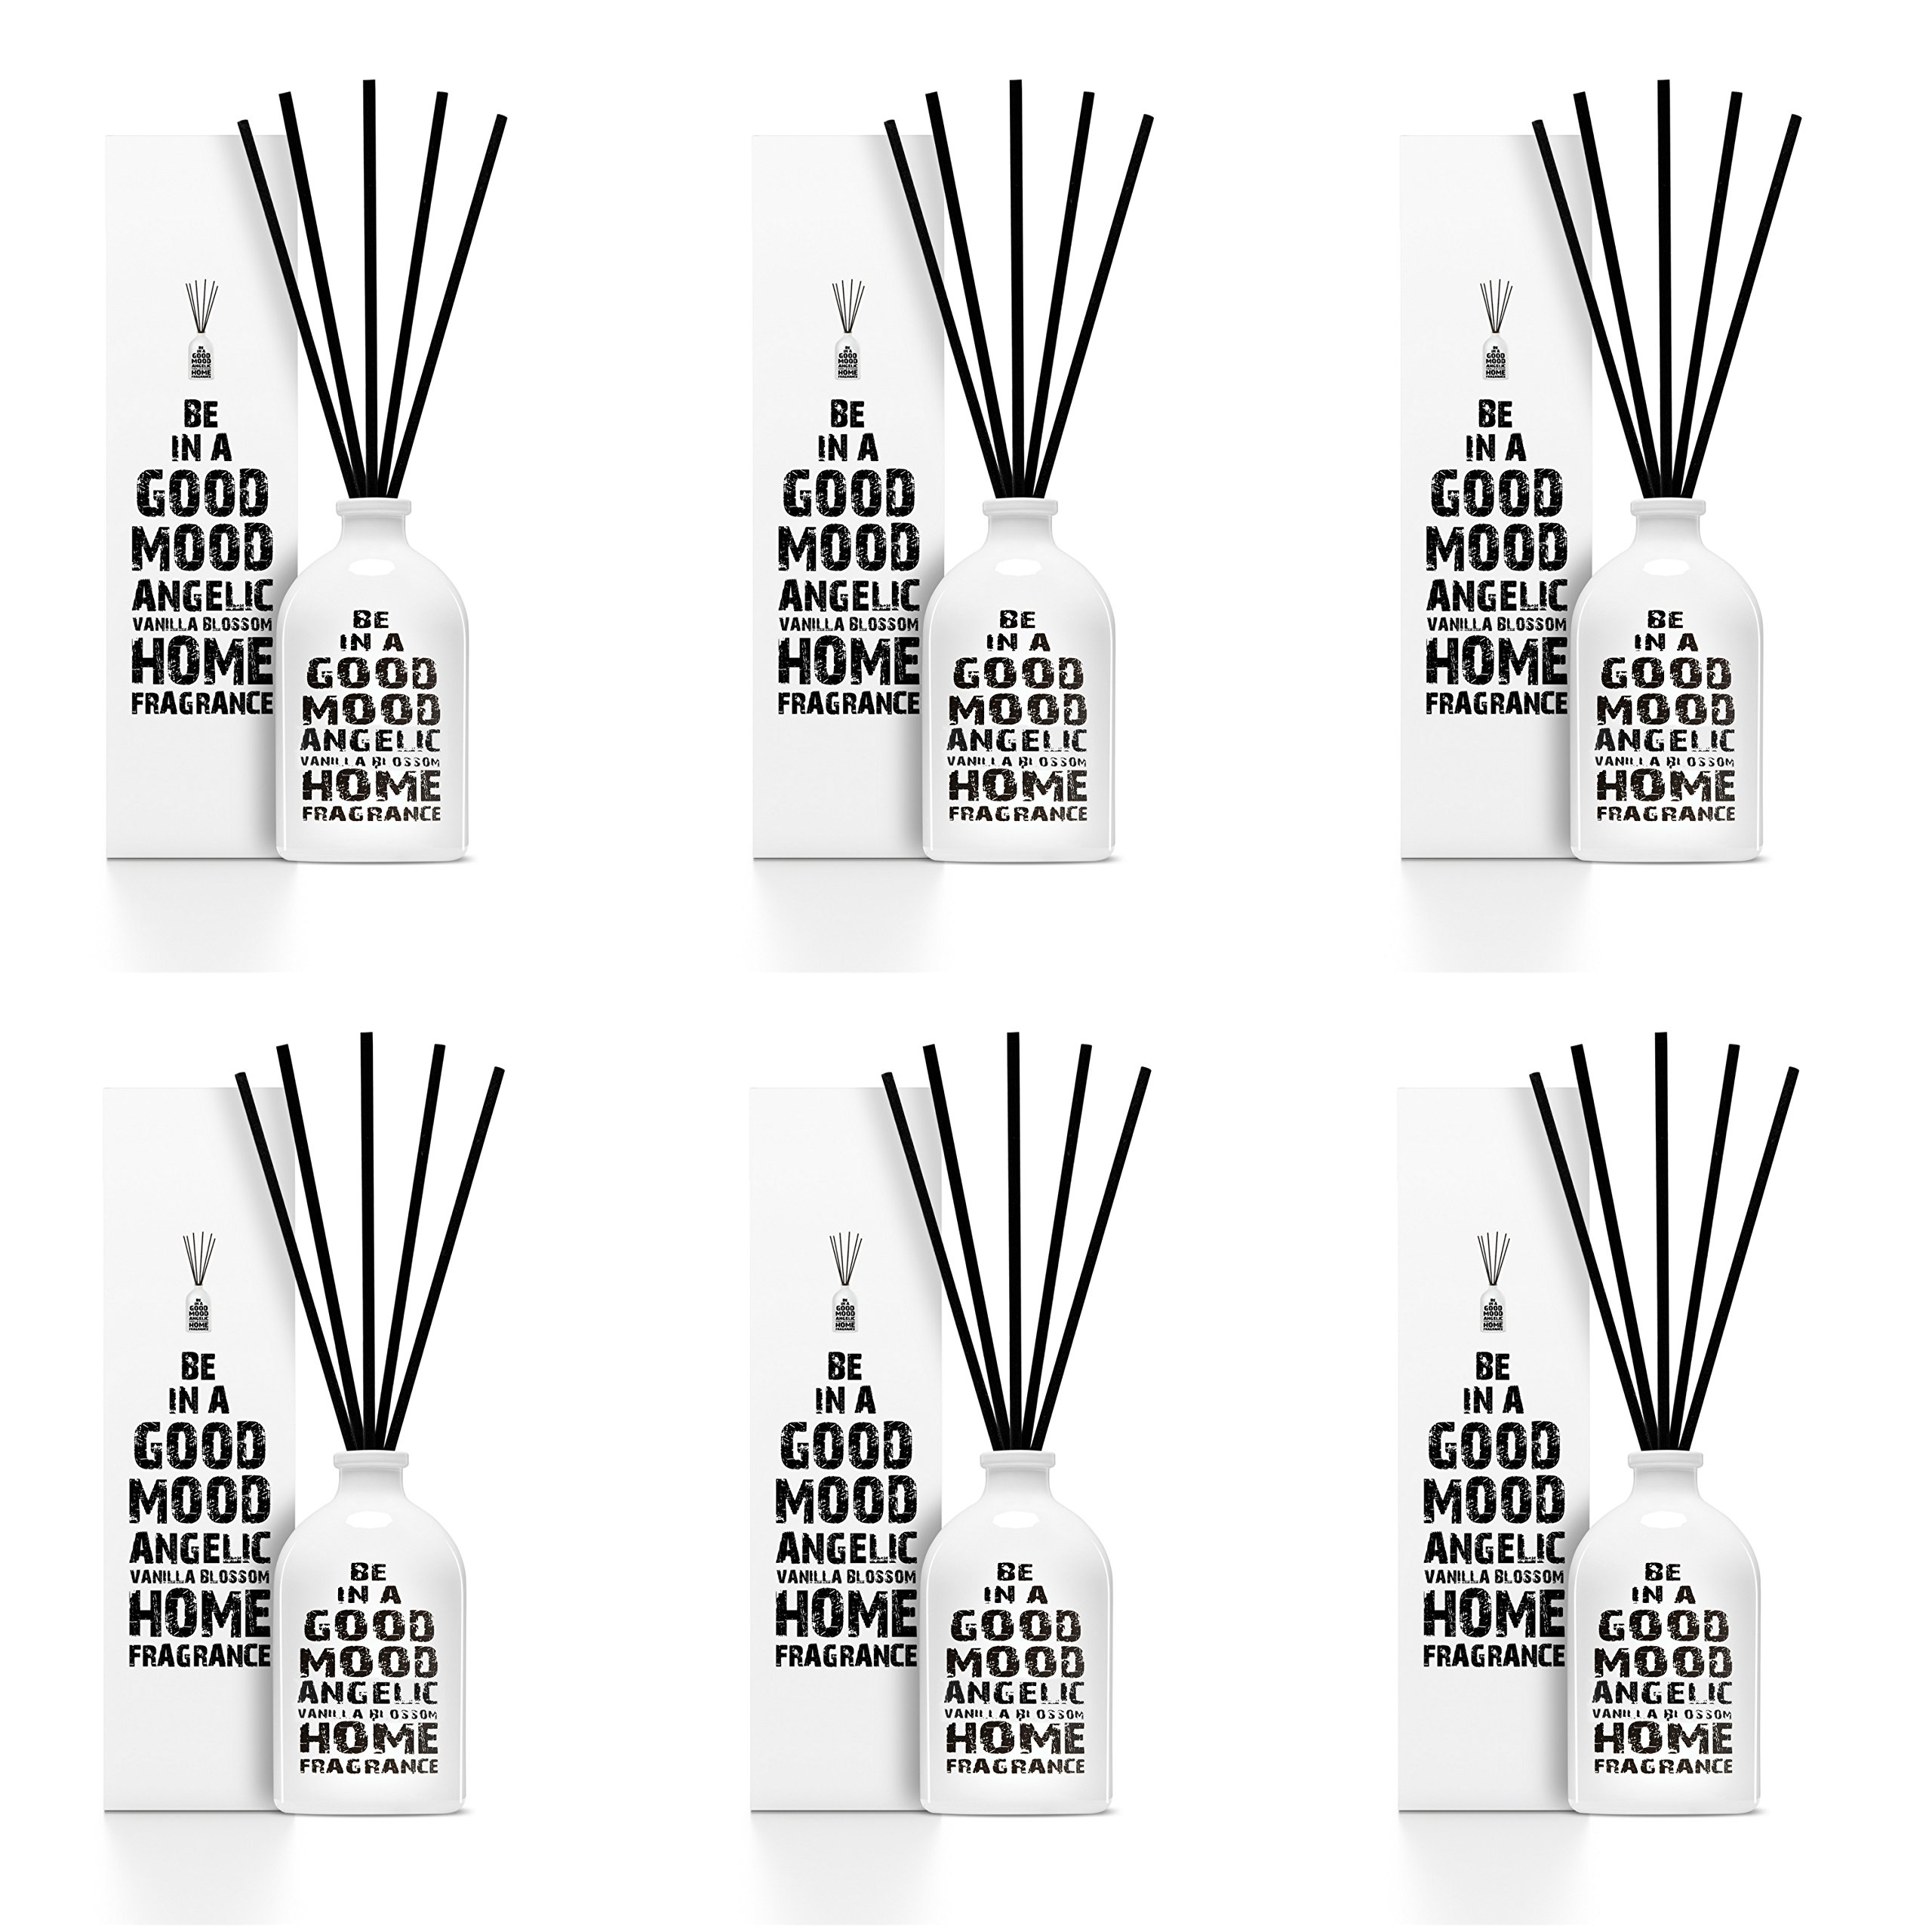 Be in a Good Mood Aromatherapy Diffuser Sticks | Reed Diffuser Set | Aromatic Home Fragrance Set | Essential Oil Diffuser Sticks, Made of Natural Scented Oils Blend - 6 Pack (Vanilla Blossom) by Be in a Good Mood